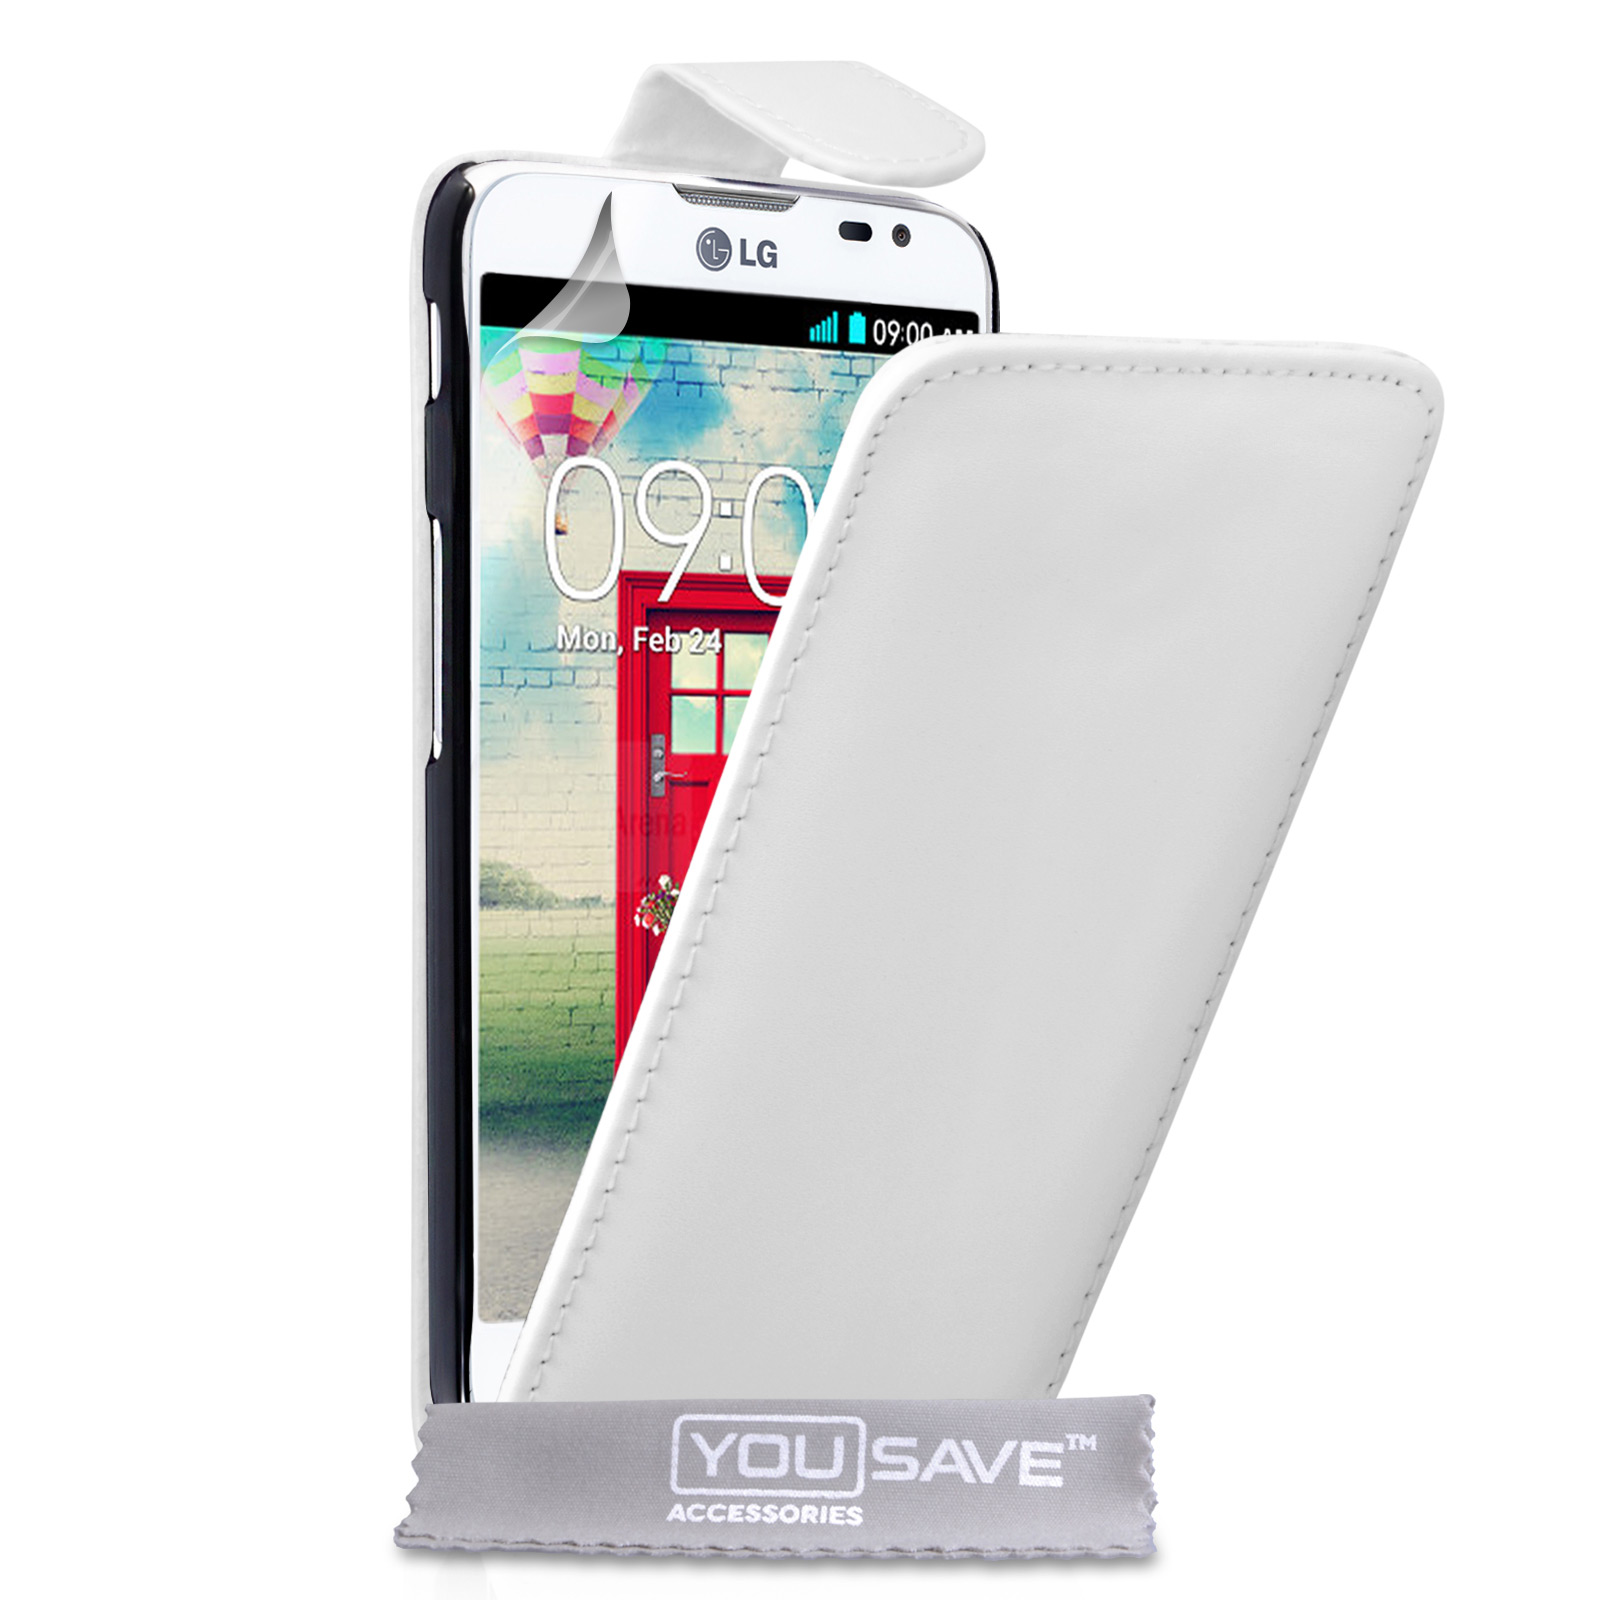 YouSave Accessories LG L90 Leather-Effect Flip Case - White